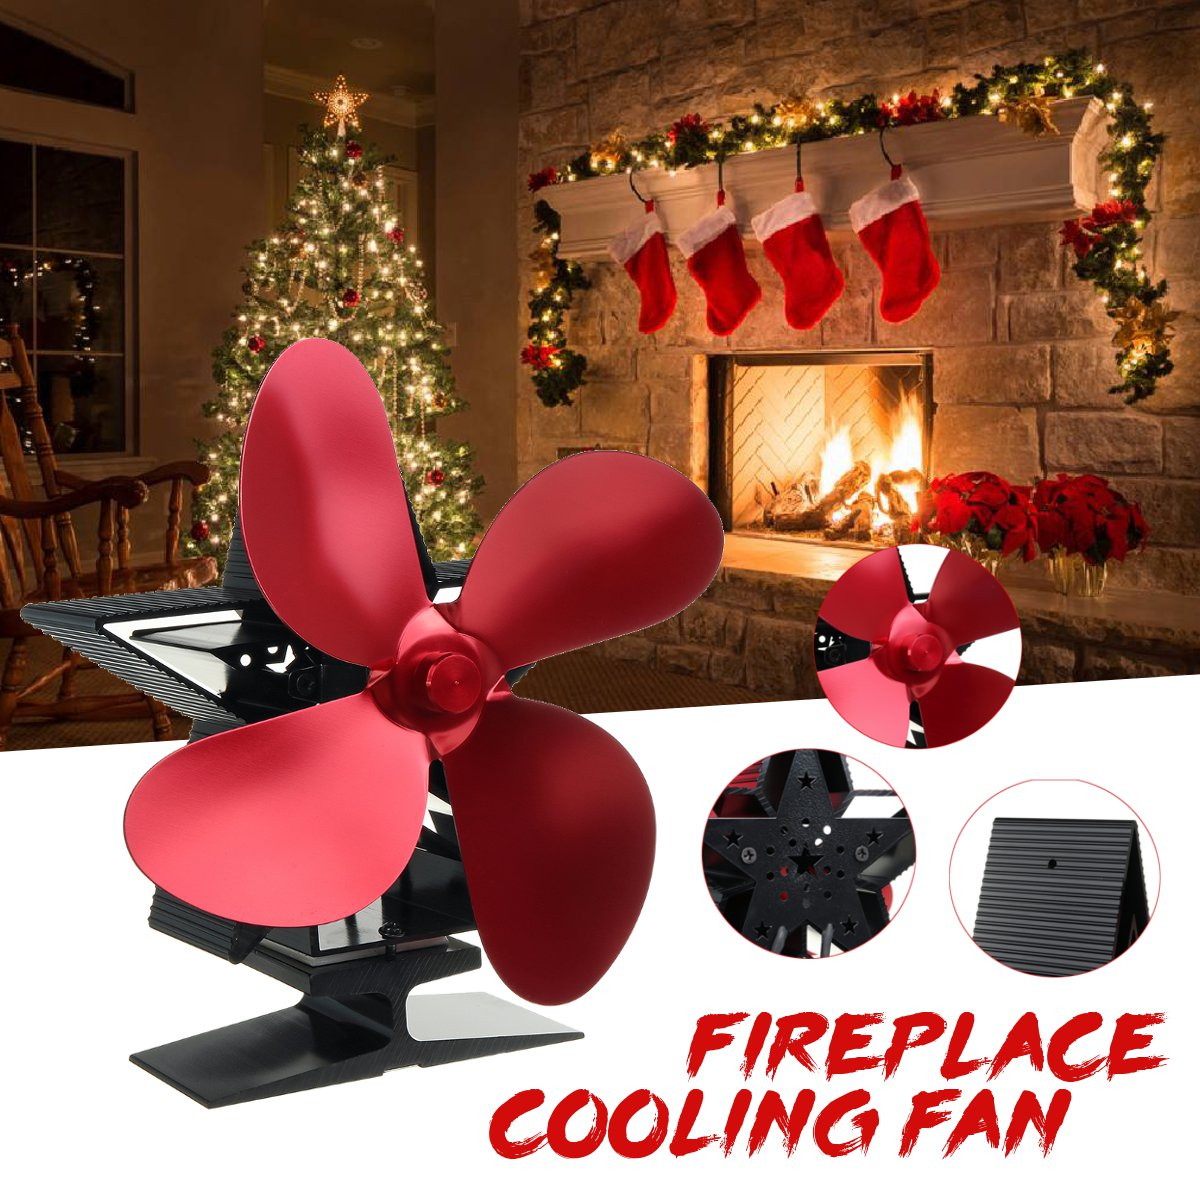 Red Stove Fan 4 Blade Fireplace Fan Heat Powered Komin Wood Burner Eco Fan Friendly Quiet Home Efficient Heat Distribution